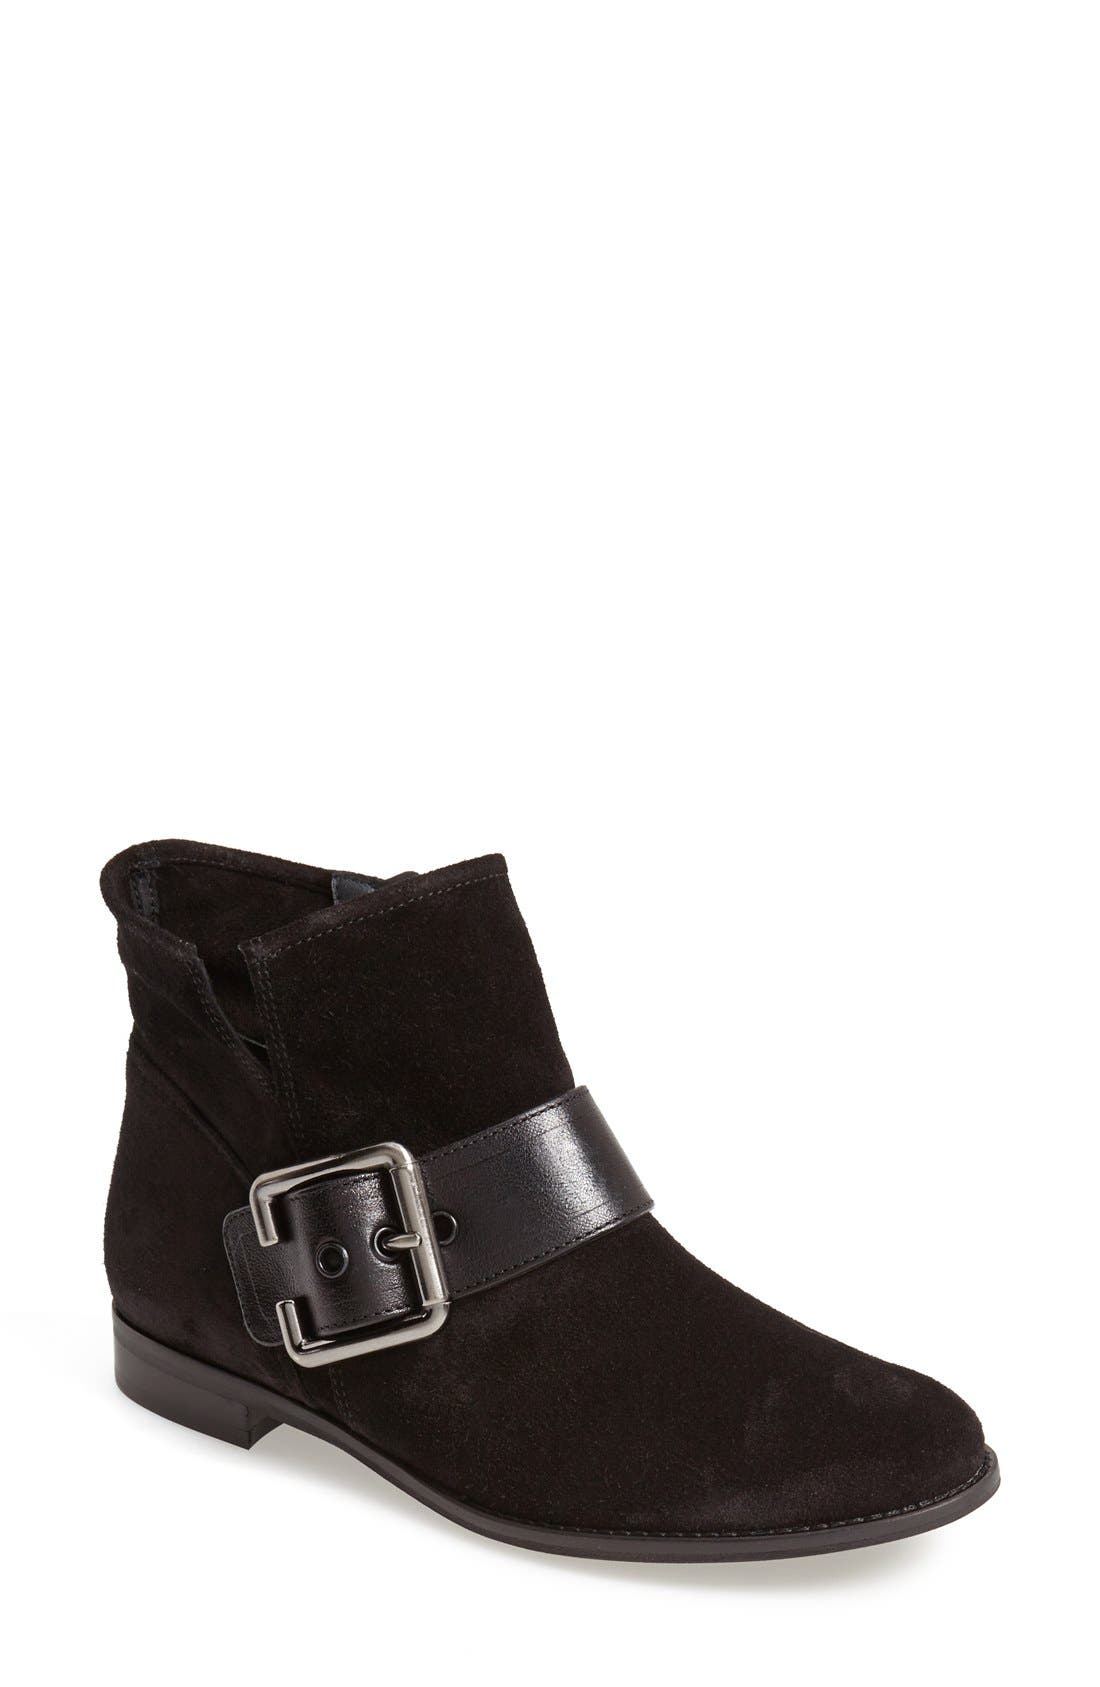 PAUL GREEN 'Bixby' Leather Bootie, Main, color, 009